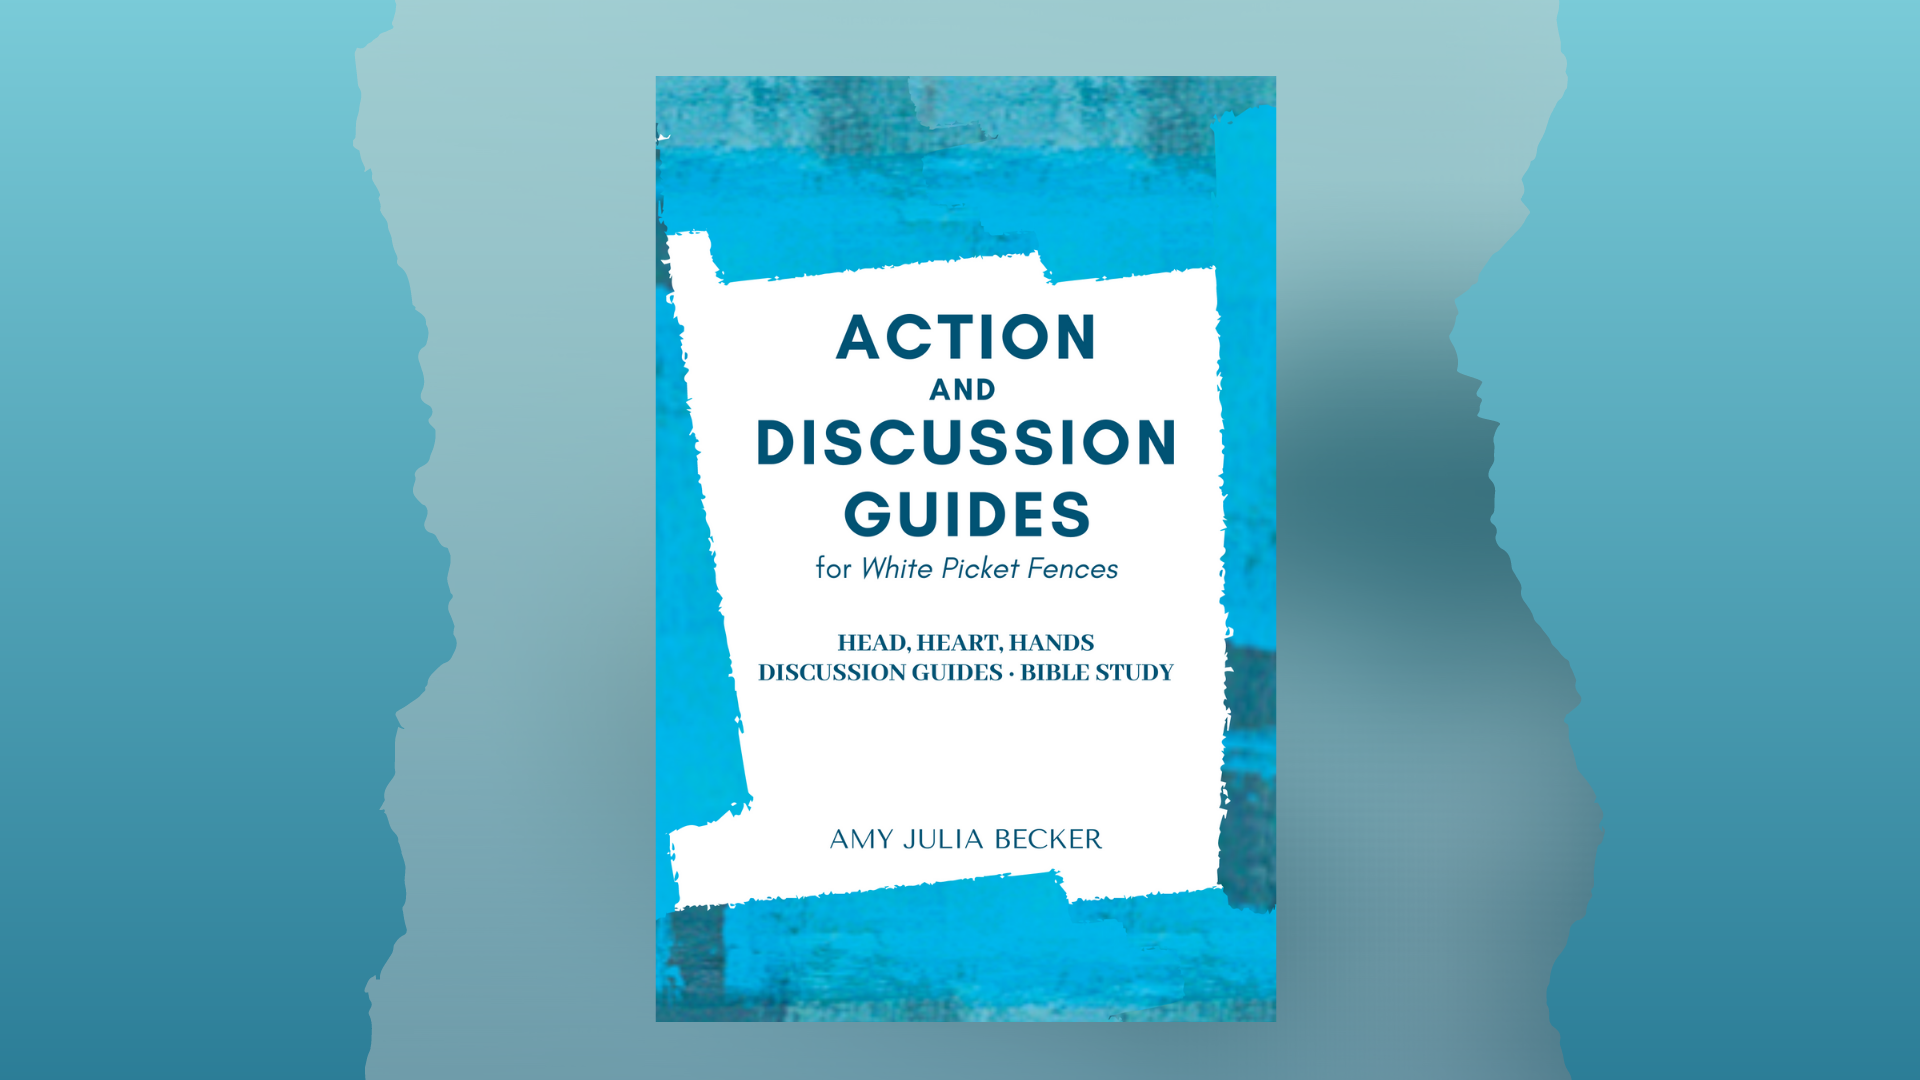 Action and Discussion Guides for White Picket Fences